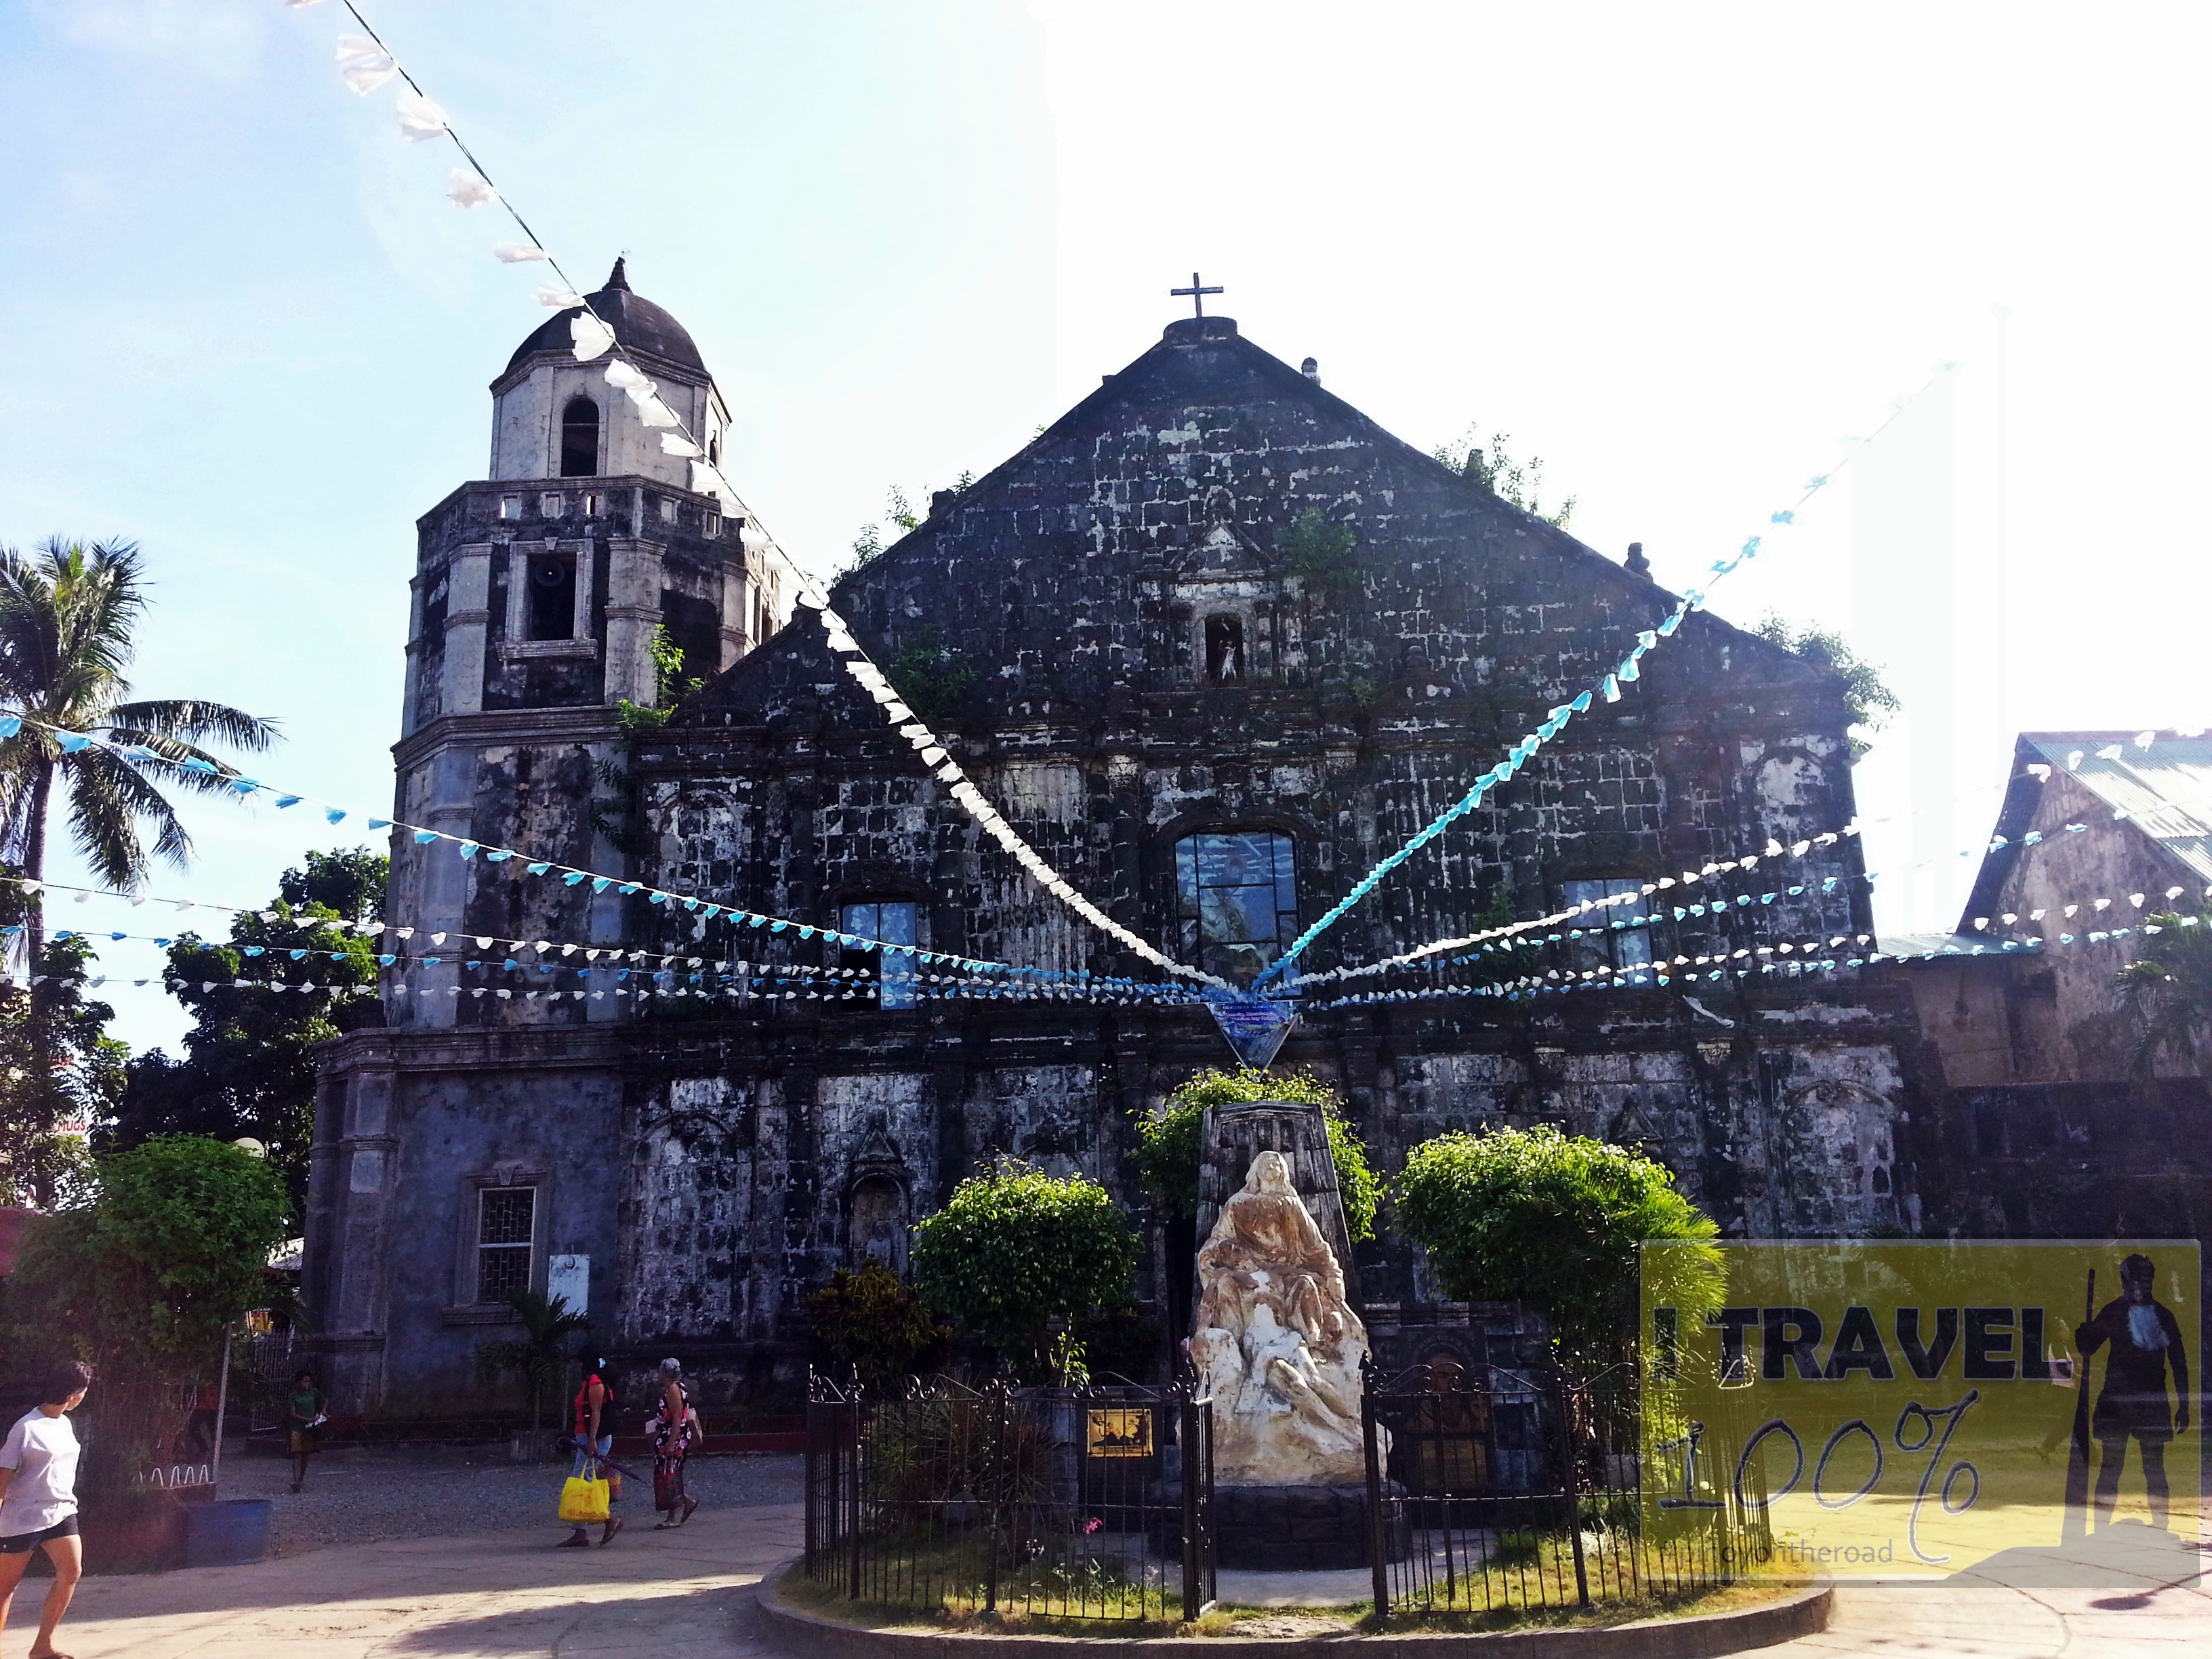 st james the great parish church of bolinao pinoyontheroad pangasinan st james the great parush church photo essay